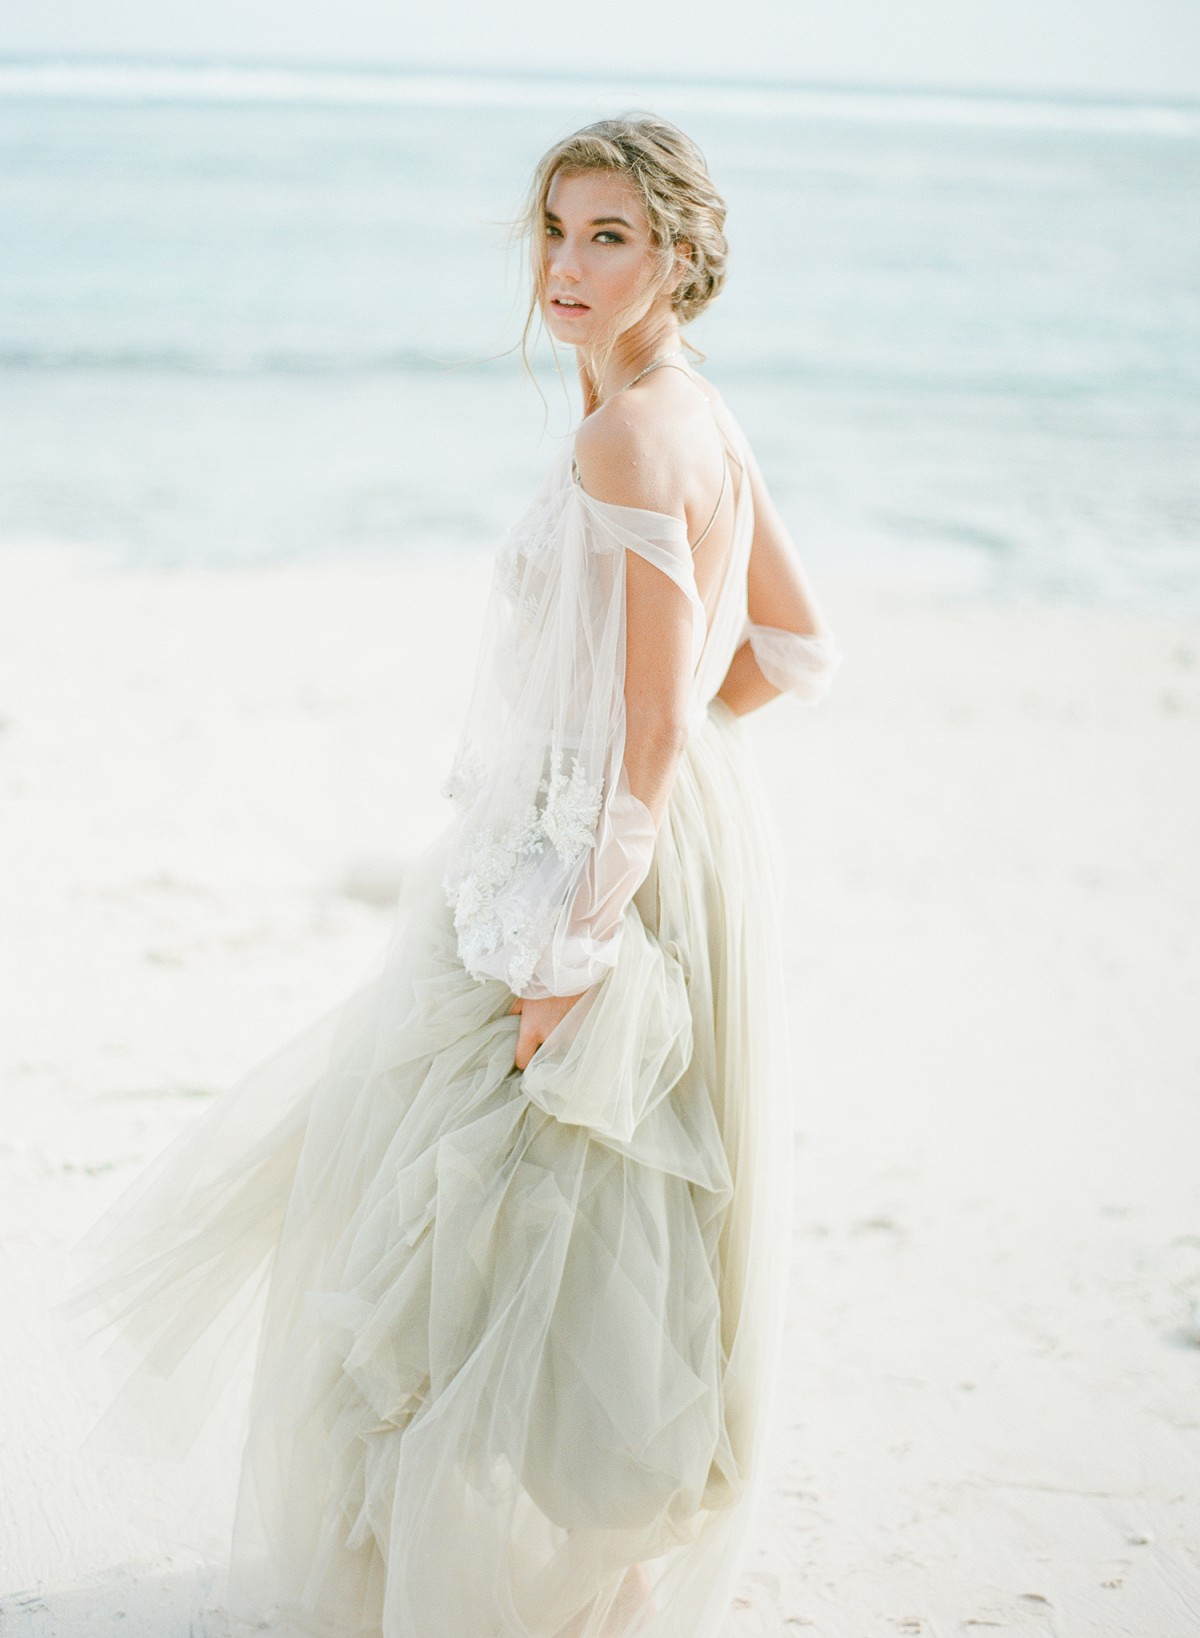 Coastal Wedding Style with Gray Wedding Dress